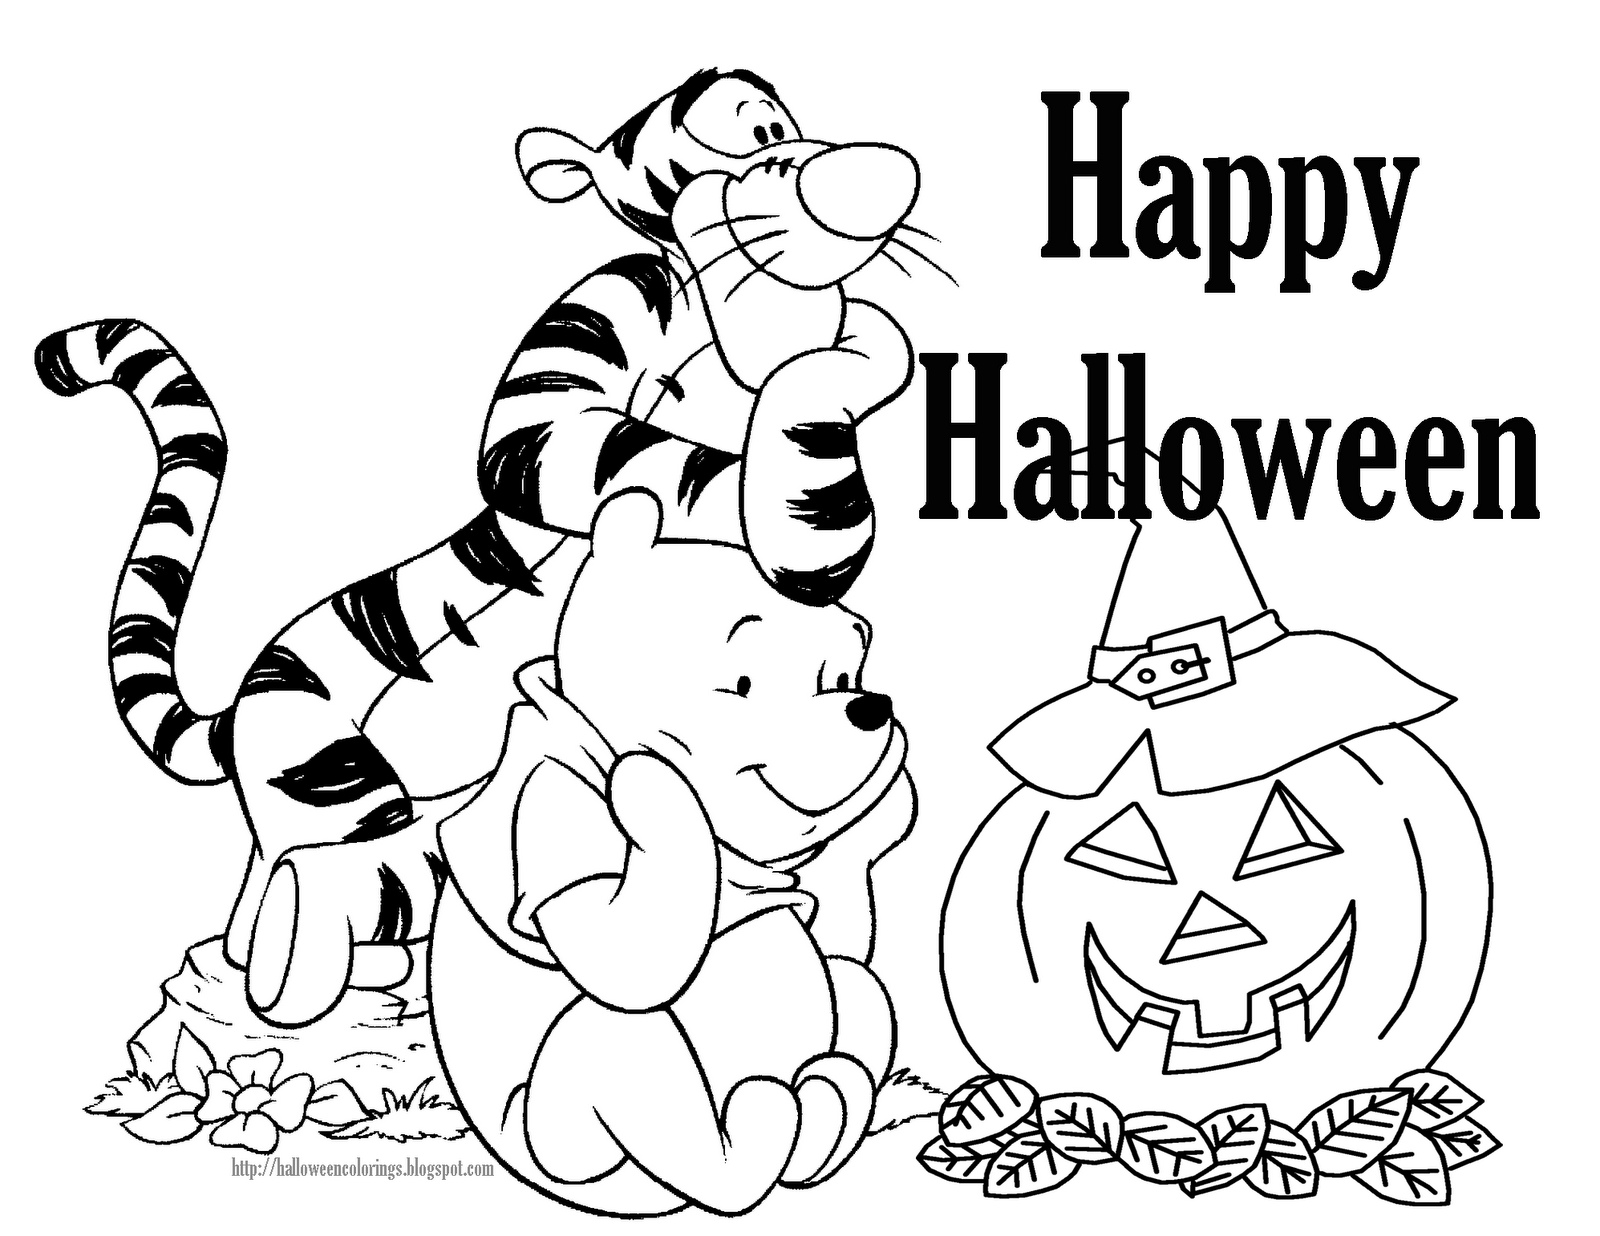 halloween printables free coloring pages - Pumpkin Coloring Pages Download Free Printable